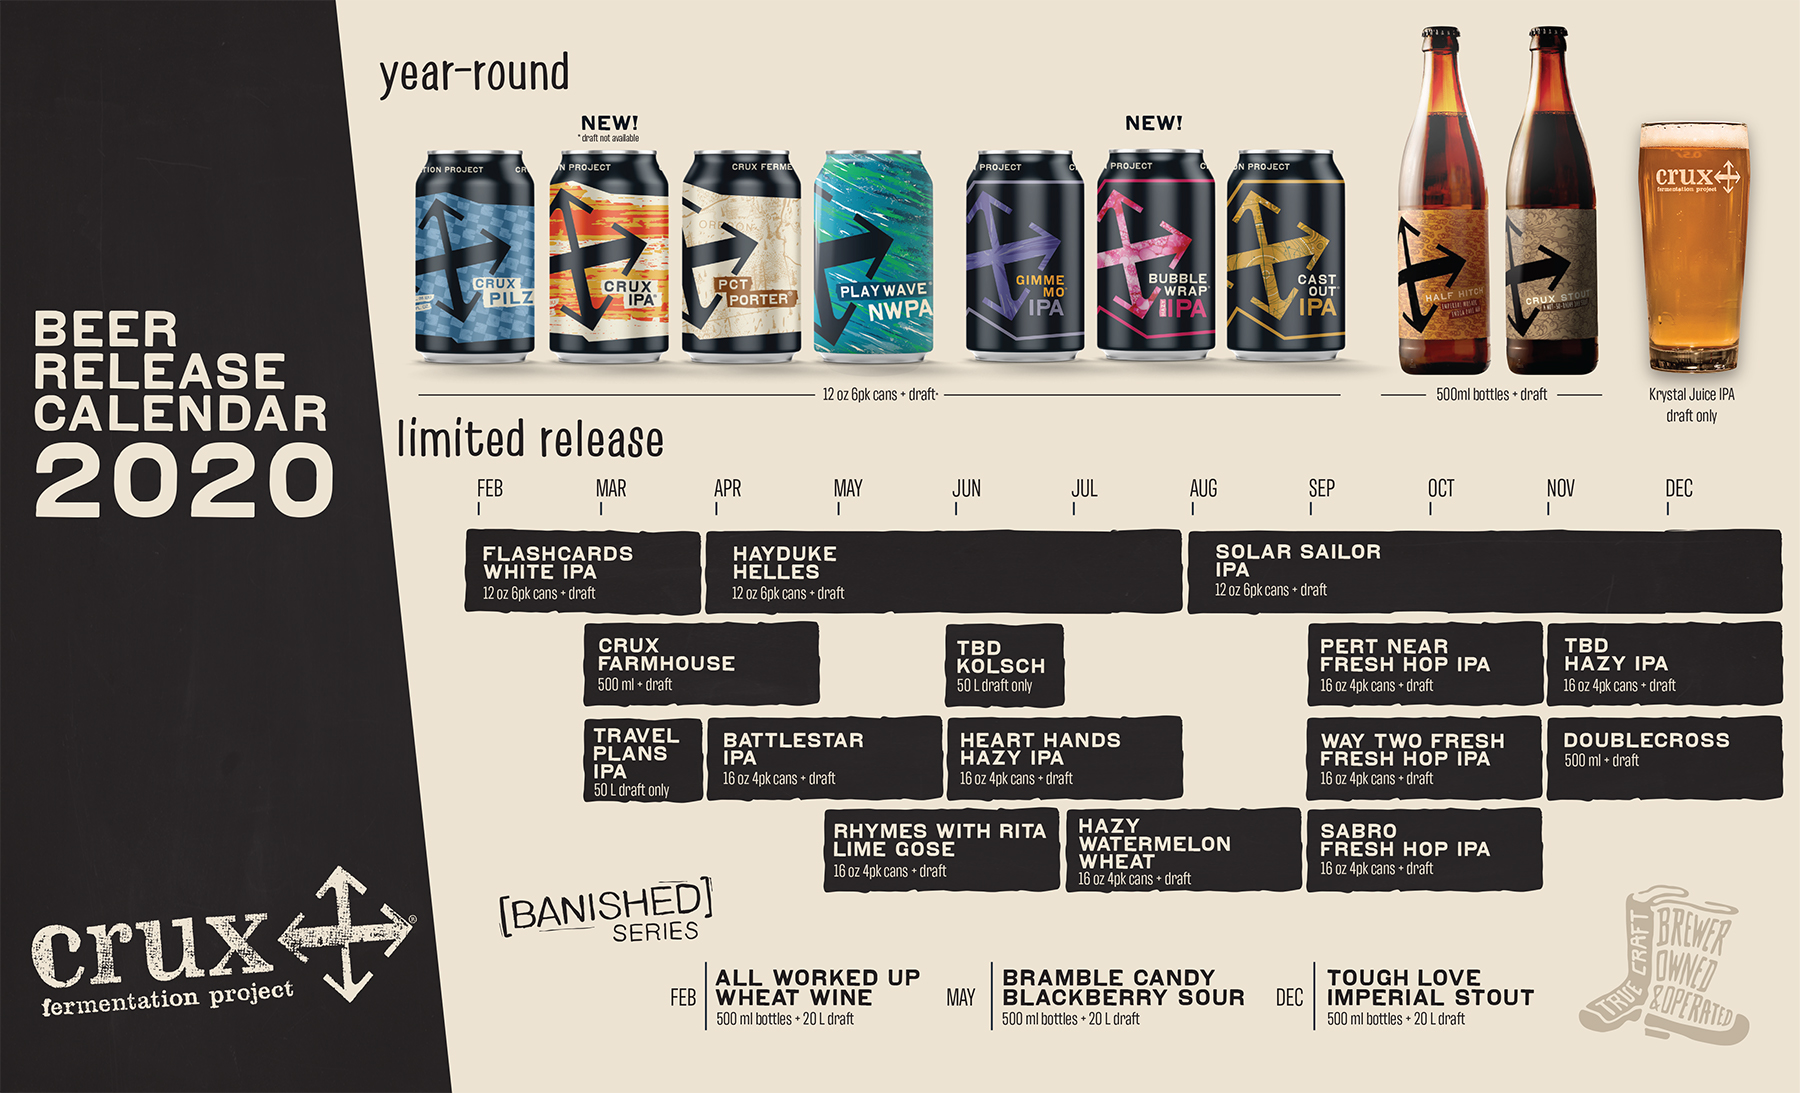 Crux Fermentation Project 2020 Beer Release Calendar